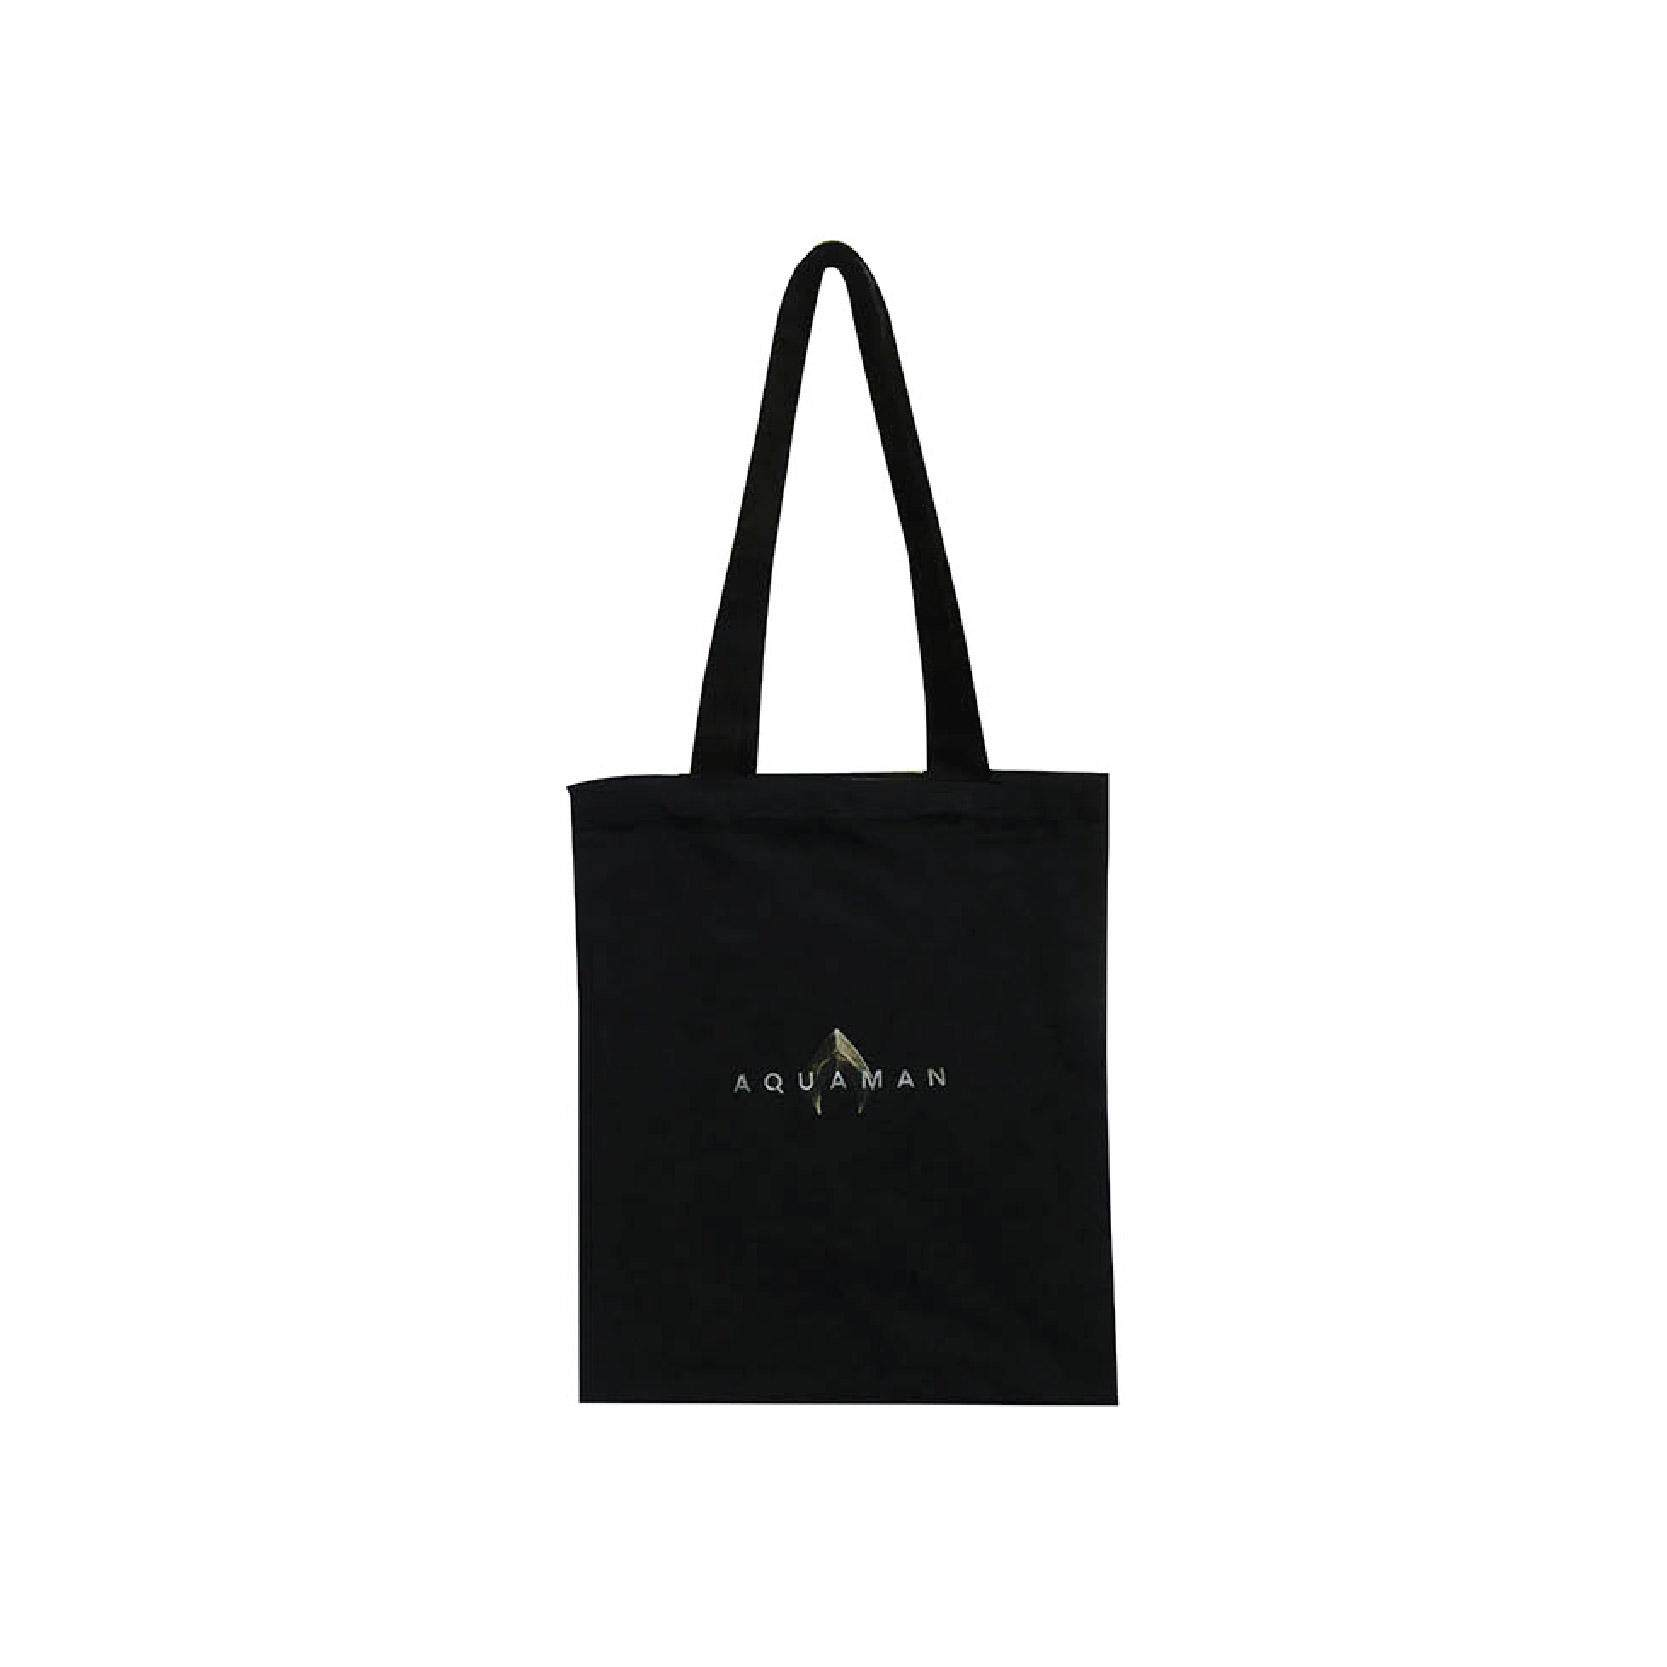 Men Tote Bags - Buy Men Tote Bags at Best Price in Malaysia  d9bd8d7865